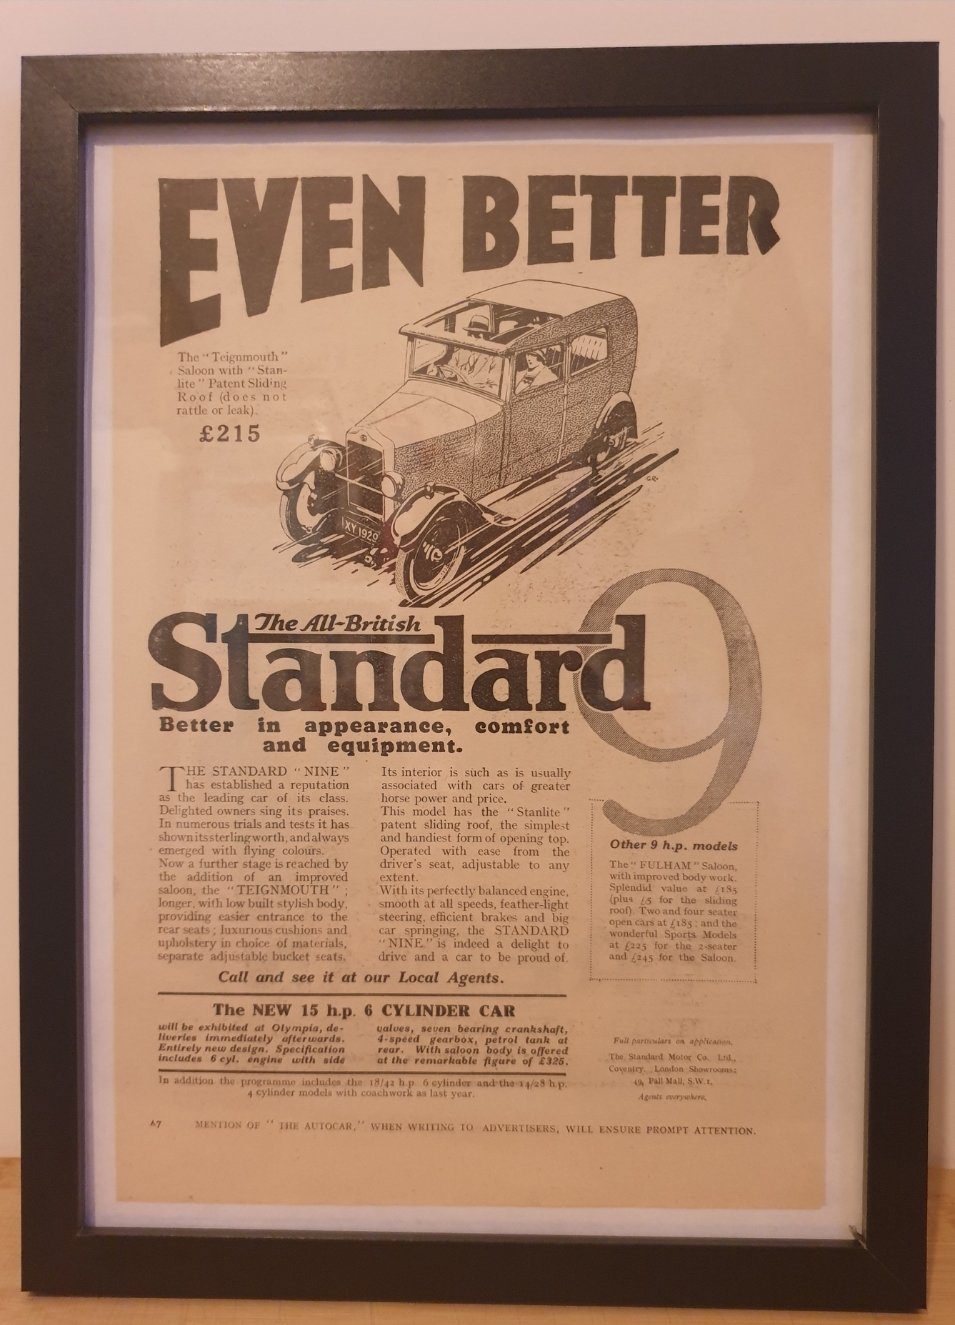 1965 Original 1928 Standard Nine Framed Advert  For Sale (picture 1 of 3)